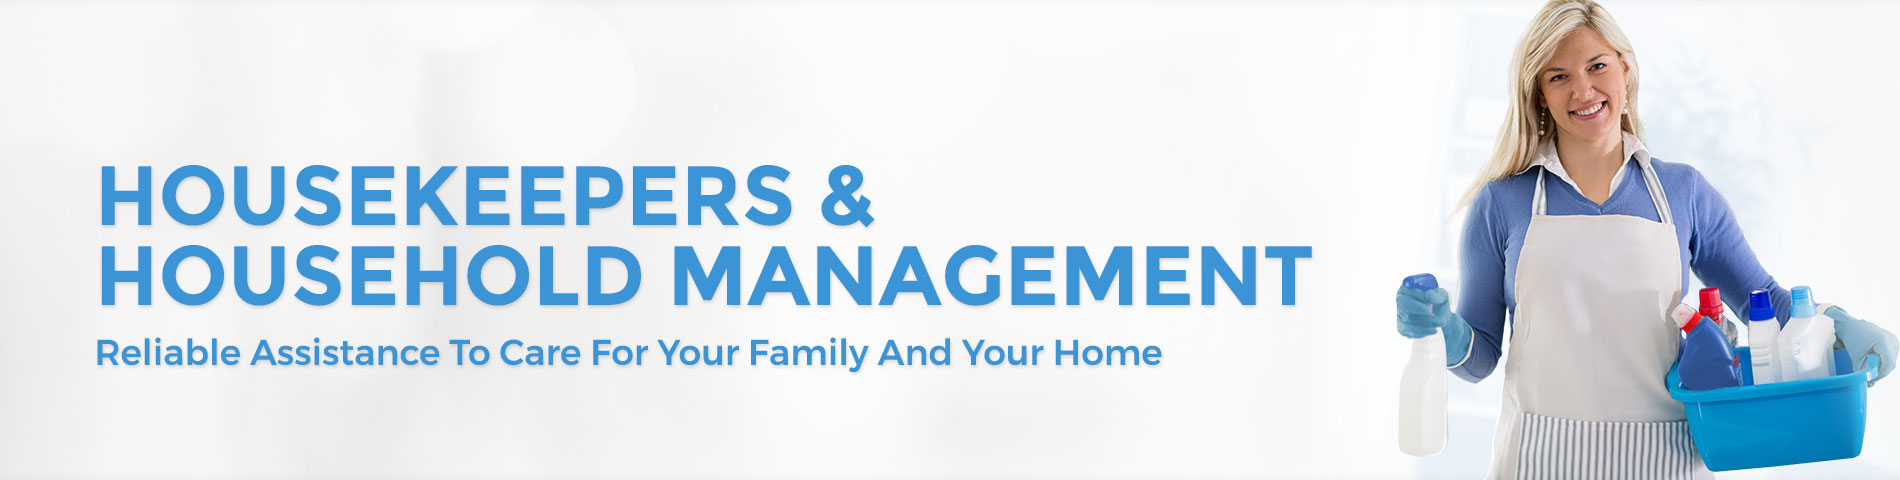 Housekeepers/Household Management Placement